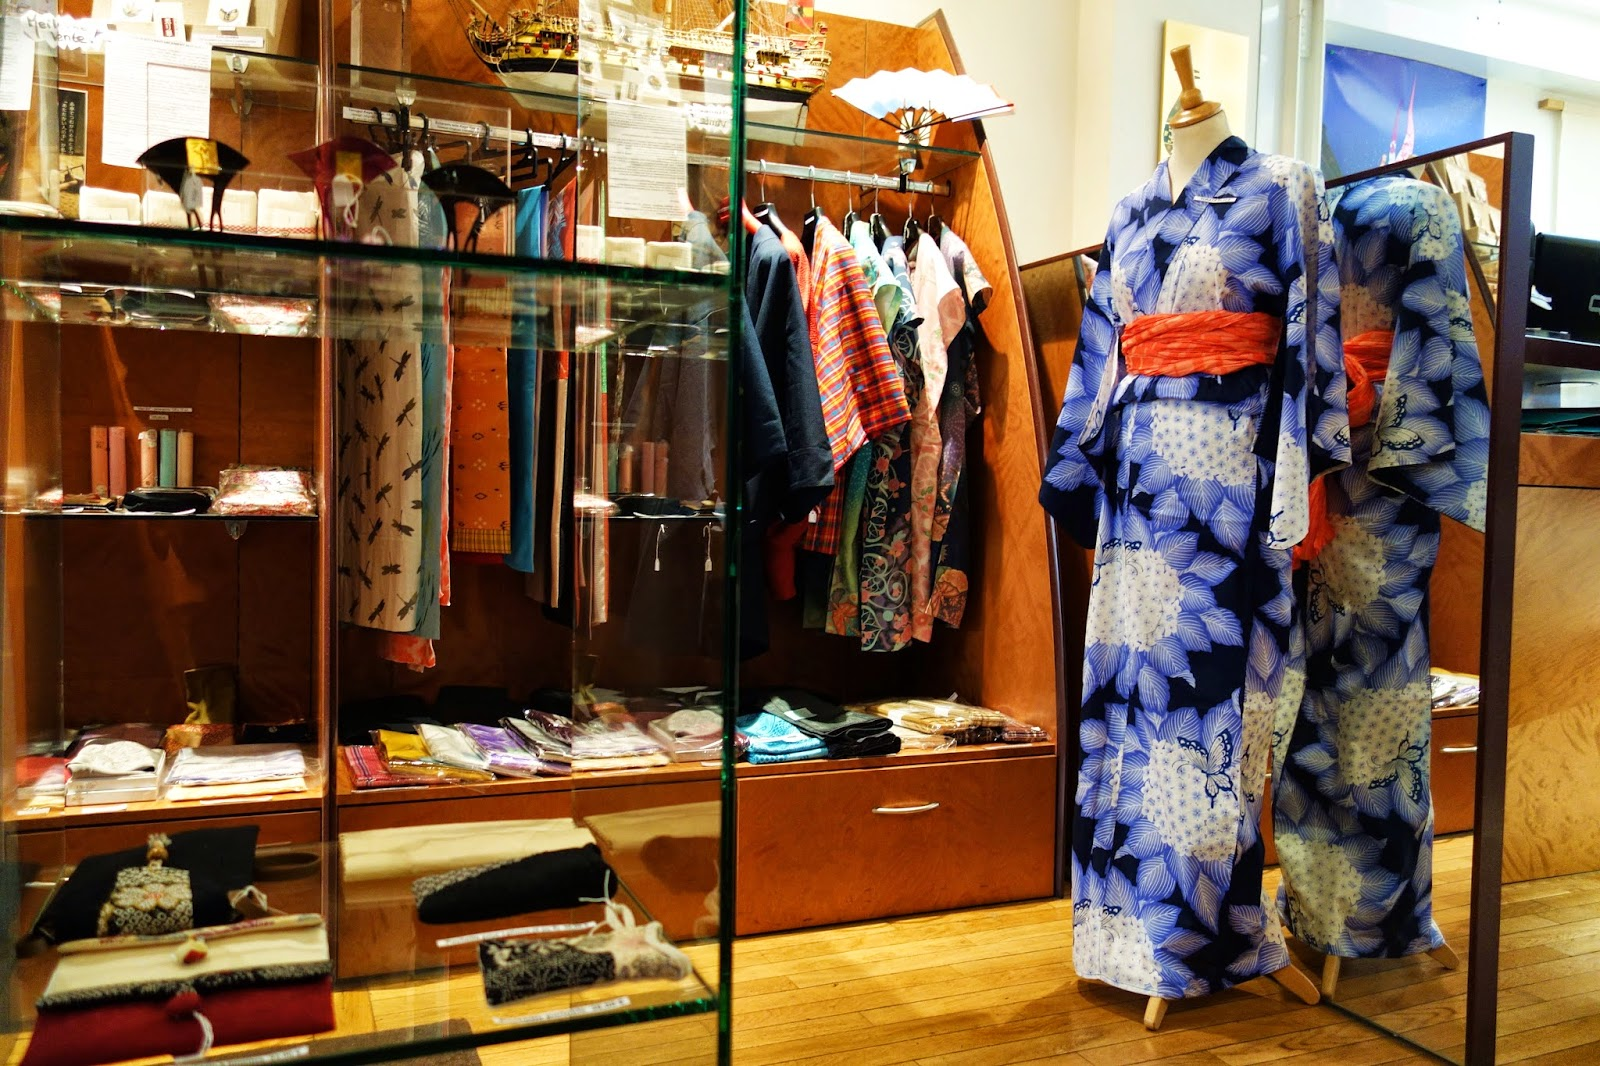 Mes adresses cool japan boutique d 39 artisanat japonais 45 rue sainte - Magasin japonais paris ...